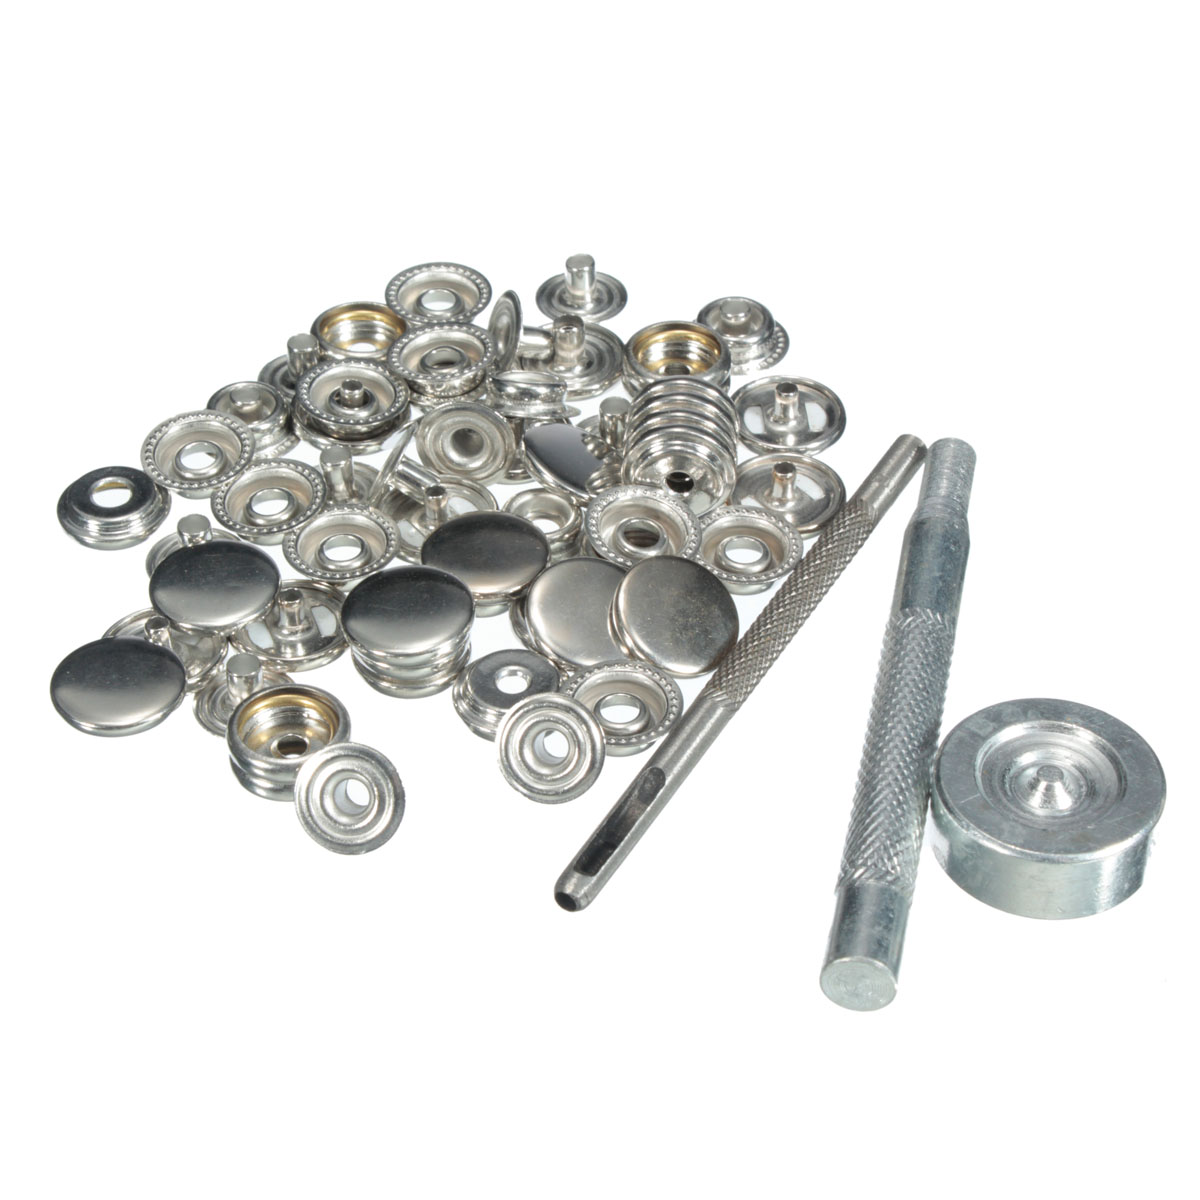 Sliver Matt Snap Poppers Fasteners Stud 15 Sets 15mm Clothing Jacket Button